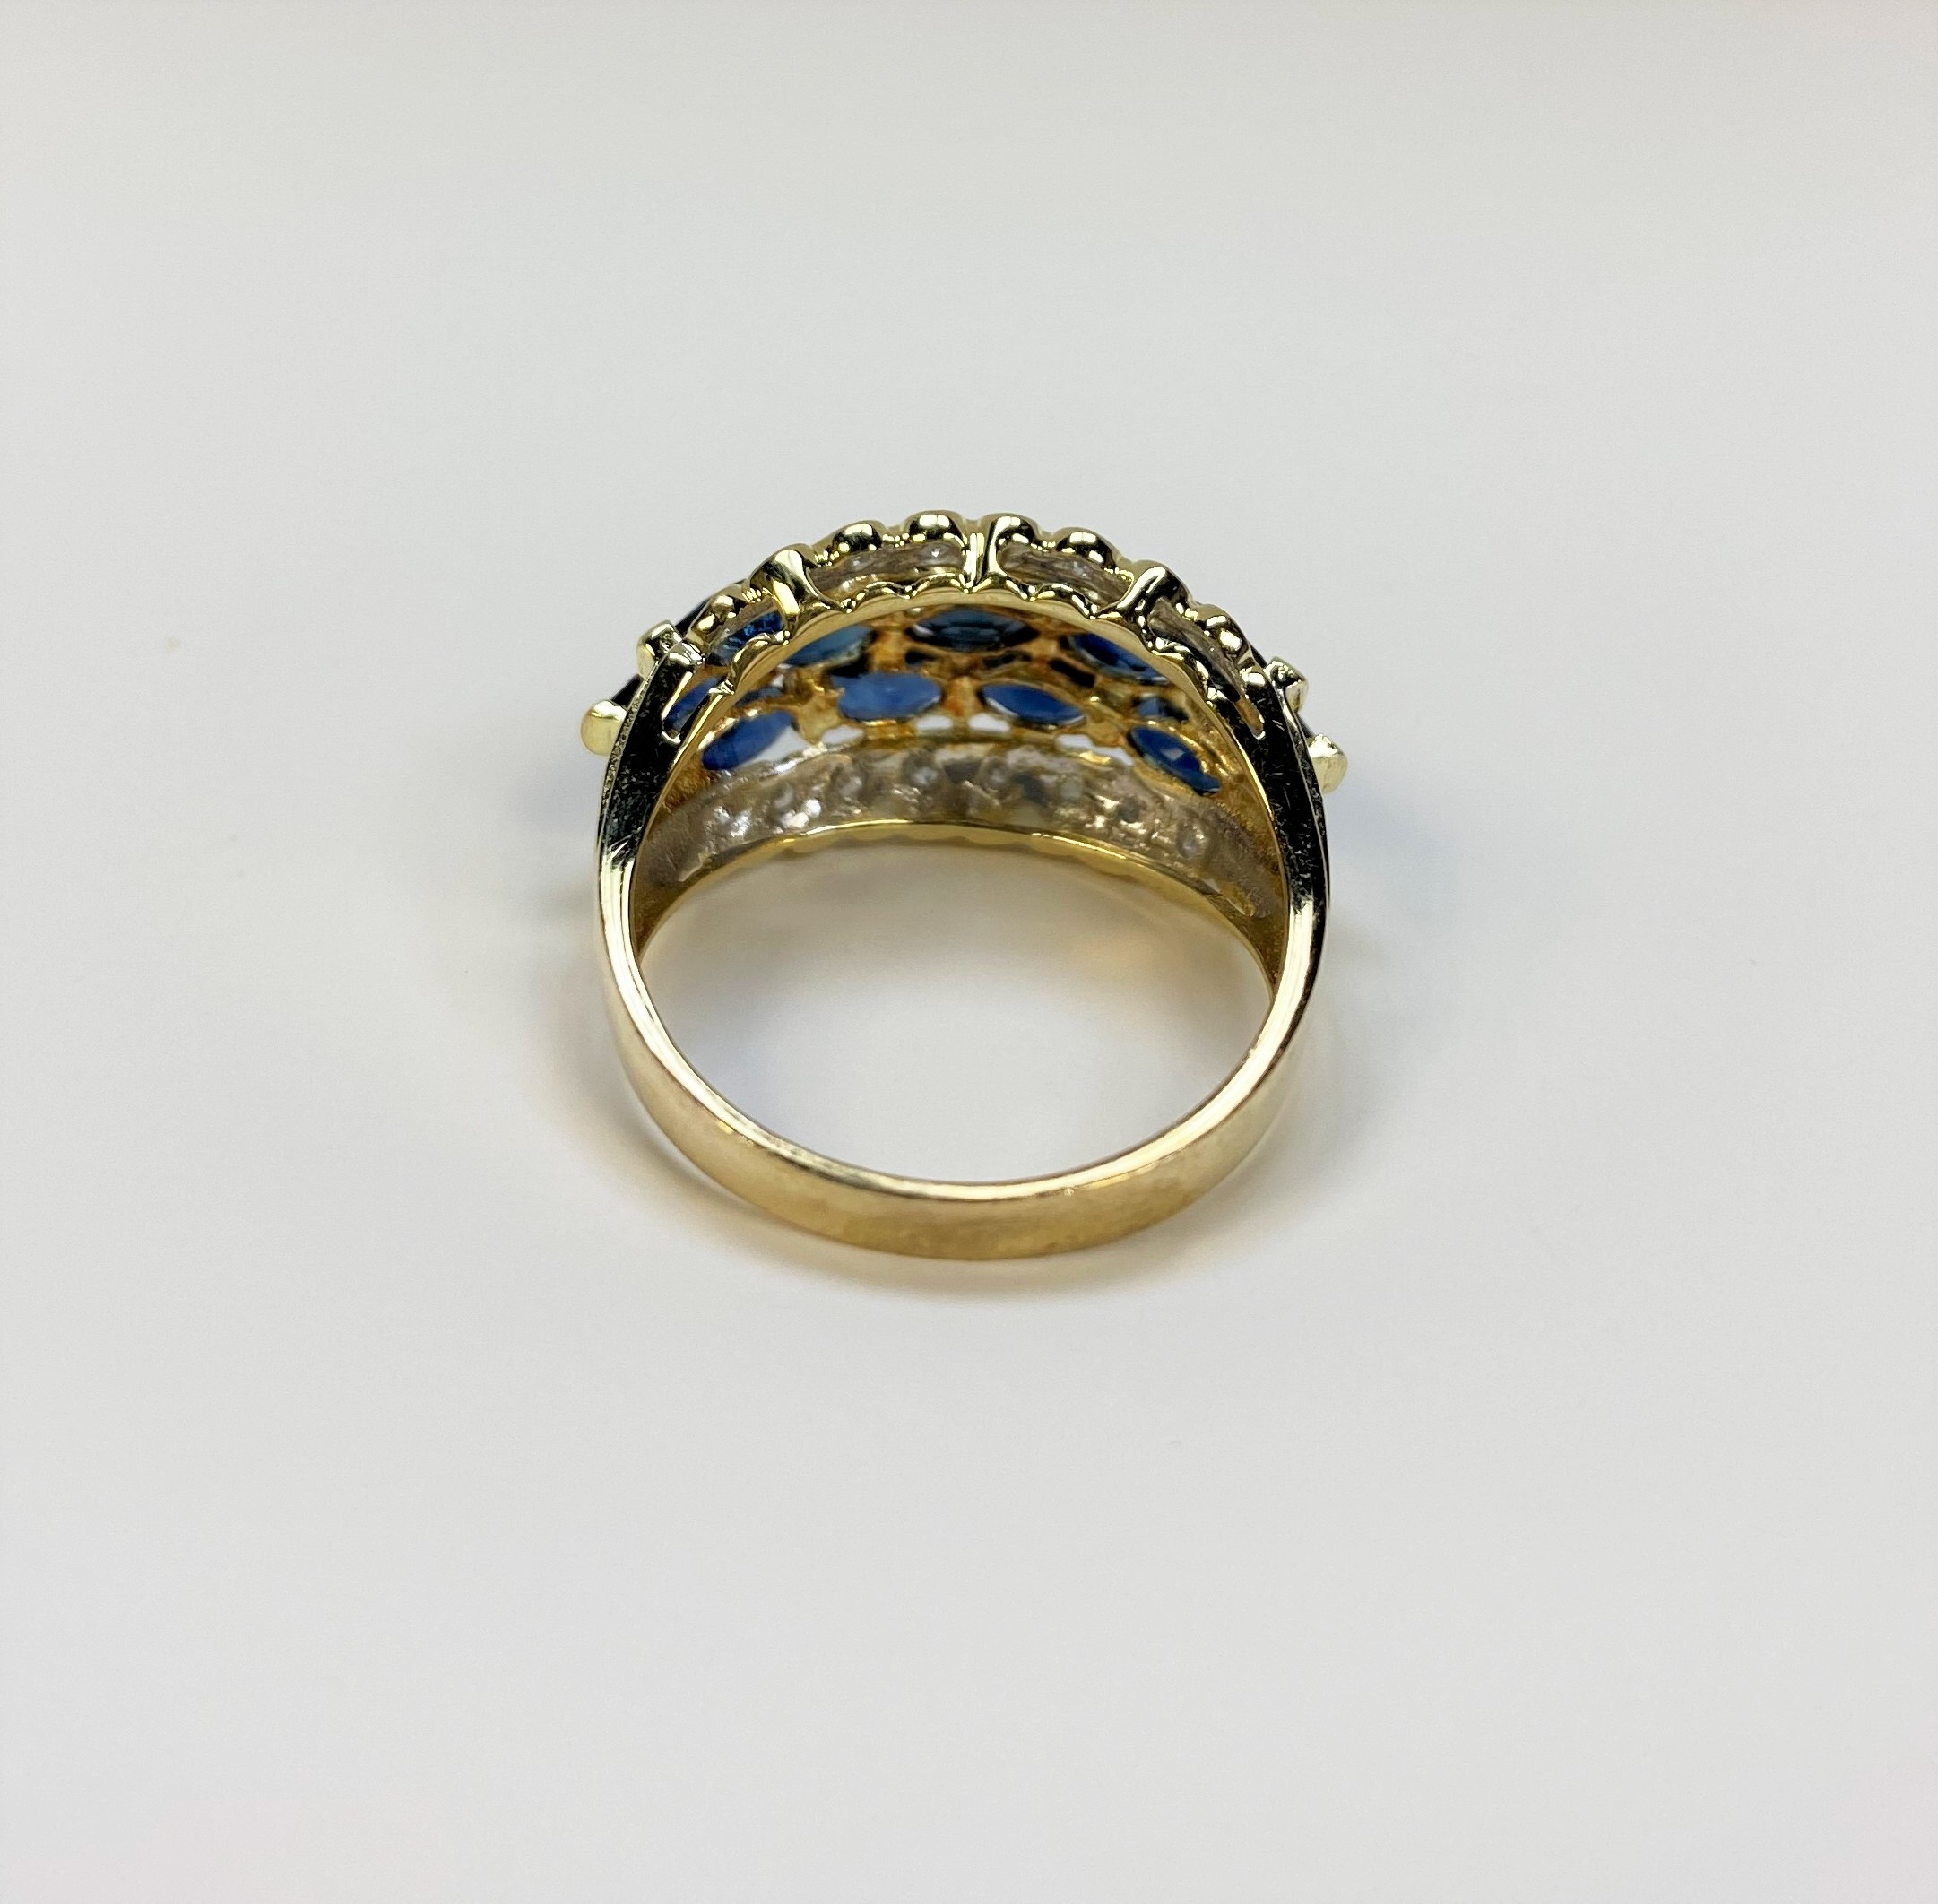 1.25 Carats Sapphire Yellow Gold Ring